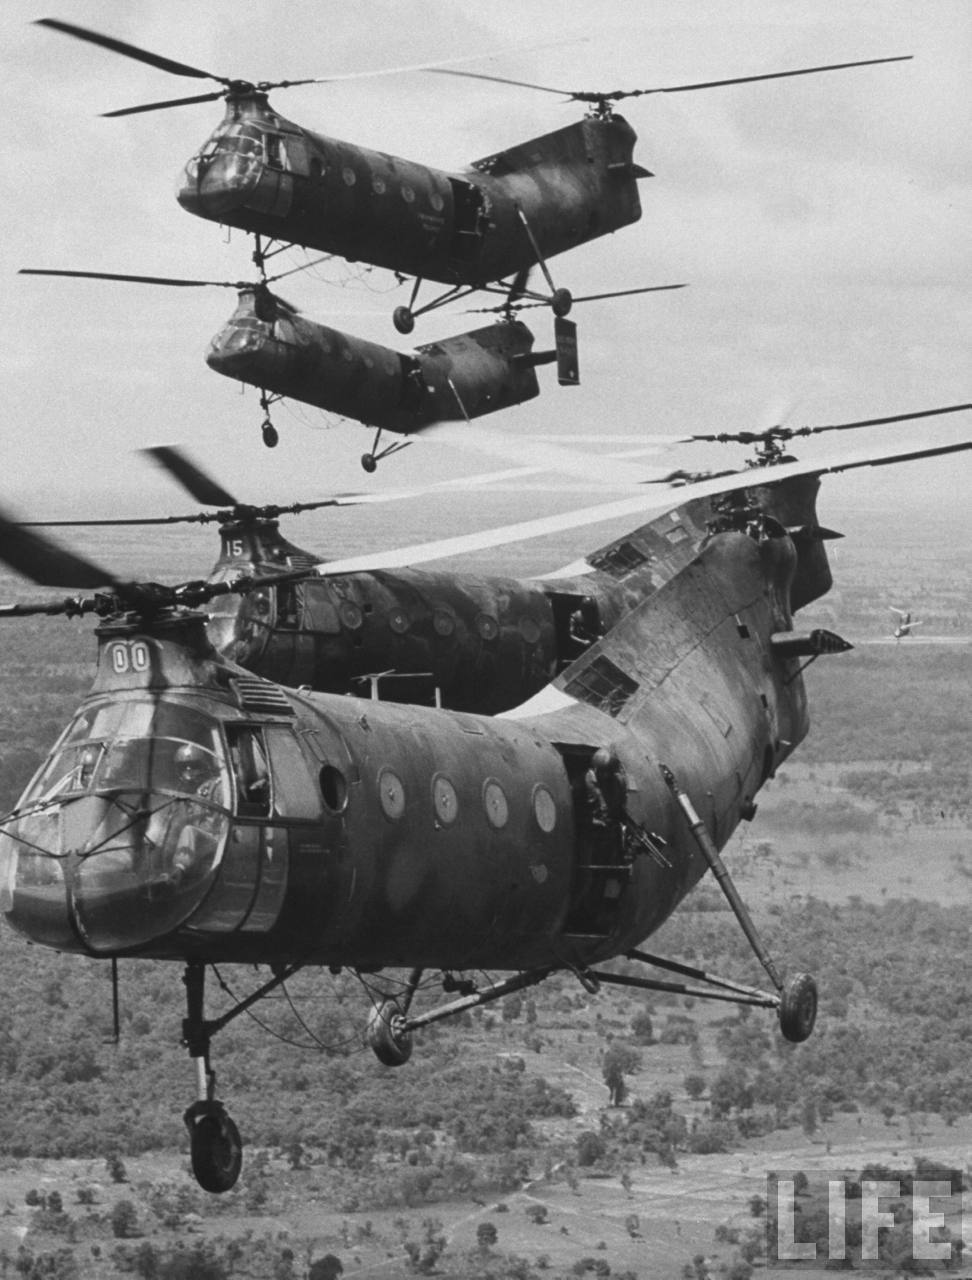 h21 helicopter with Vietnam War on Interesting furthermore Piasecki moreover Vietnam War also  moreover H21.